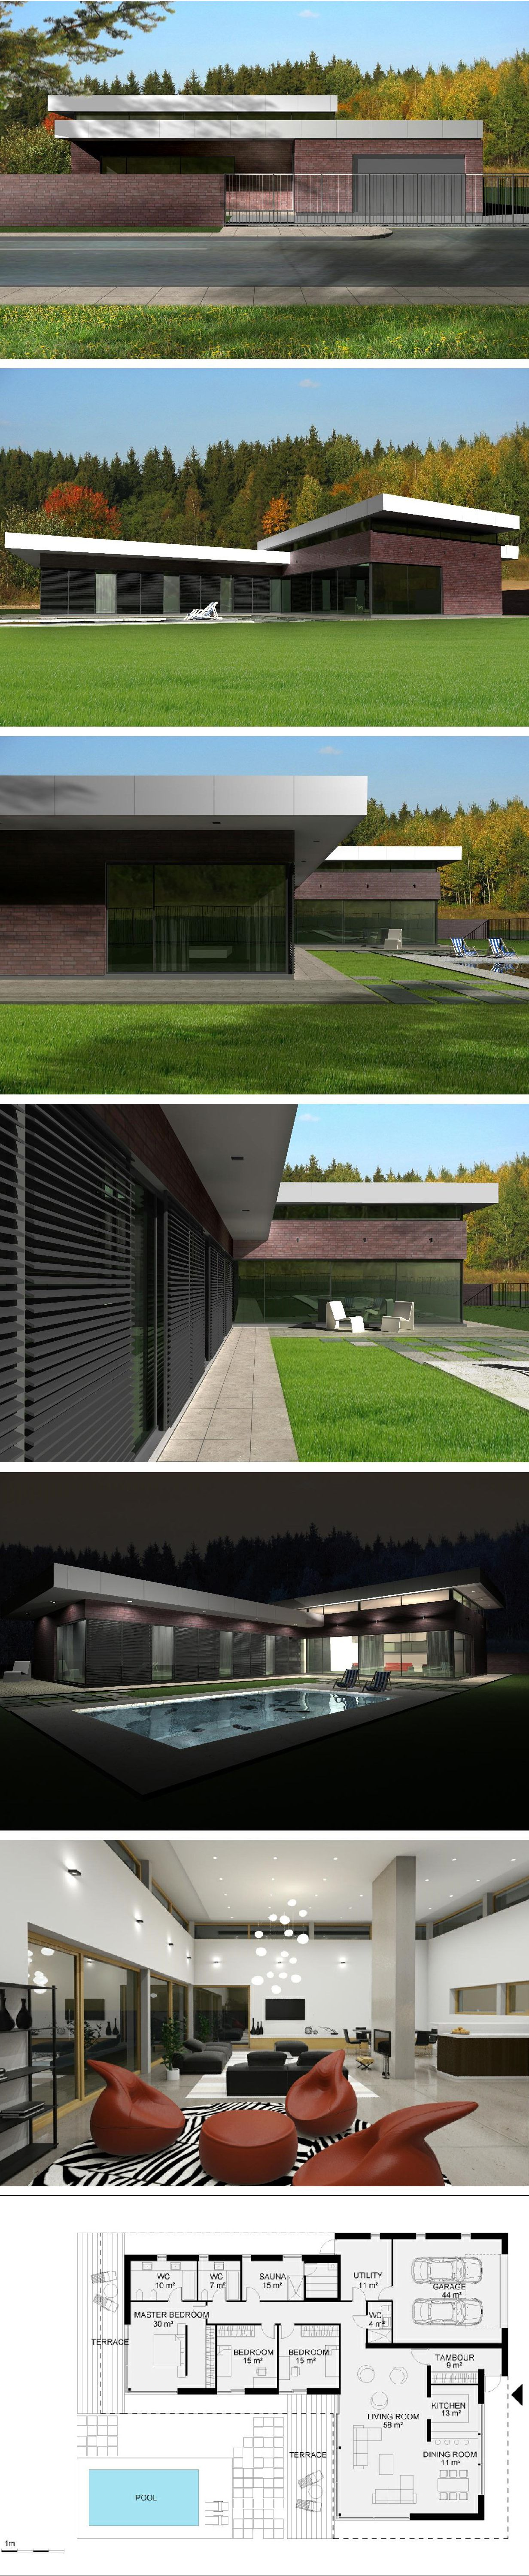 Modern house by NG architects http://ngarchitects.lt/en/projects-34